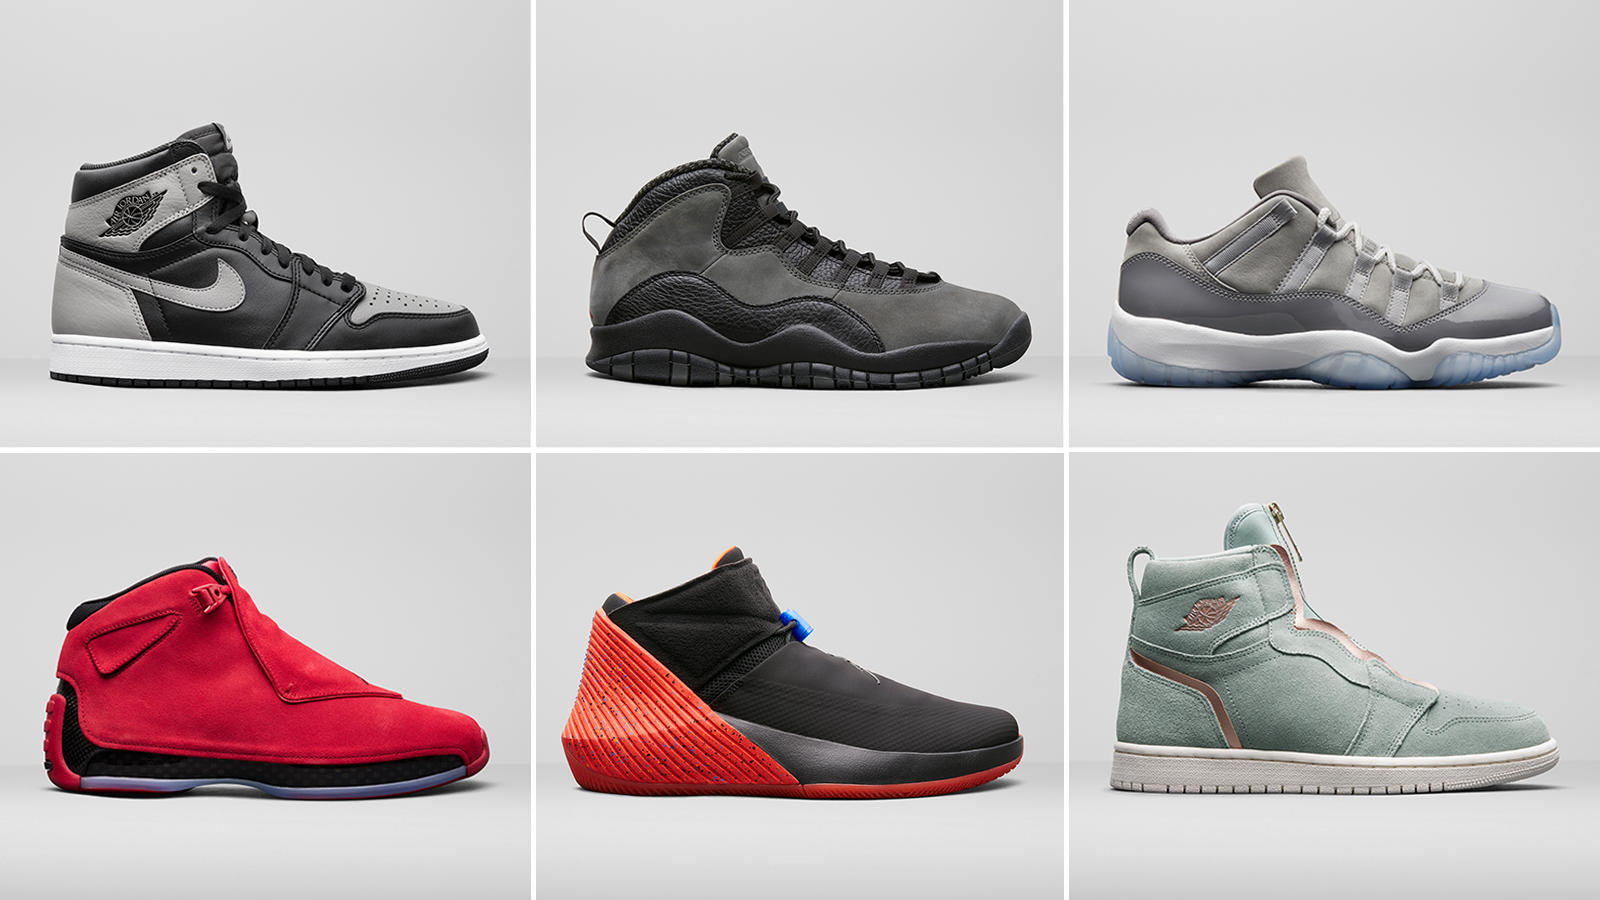 Jordan Brand Unveils Select Styles For Summer 2018 76 0fa5f9fea